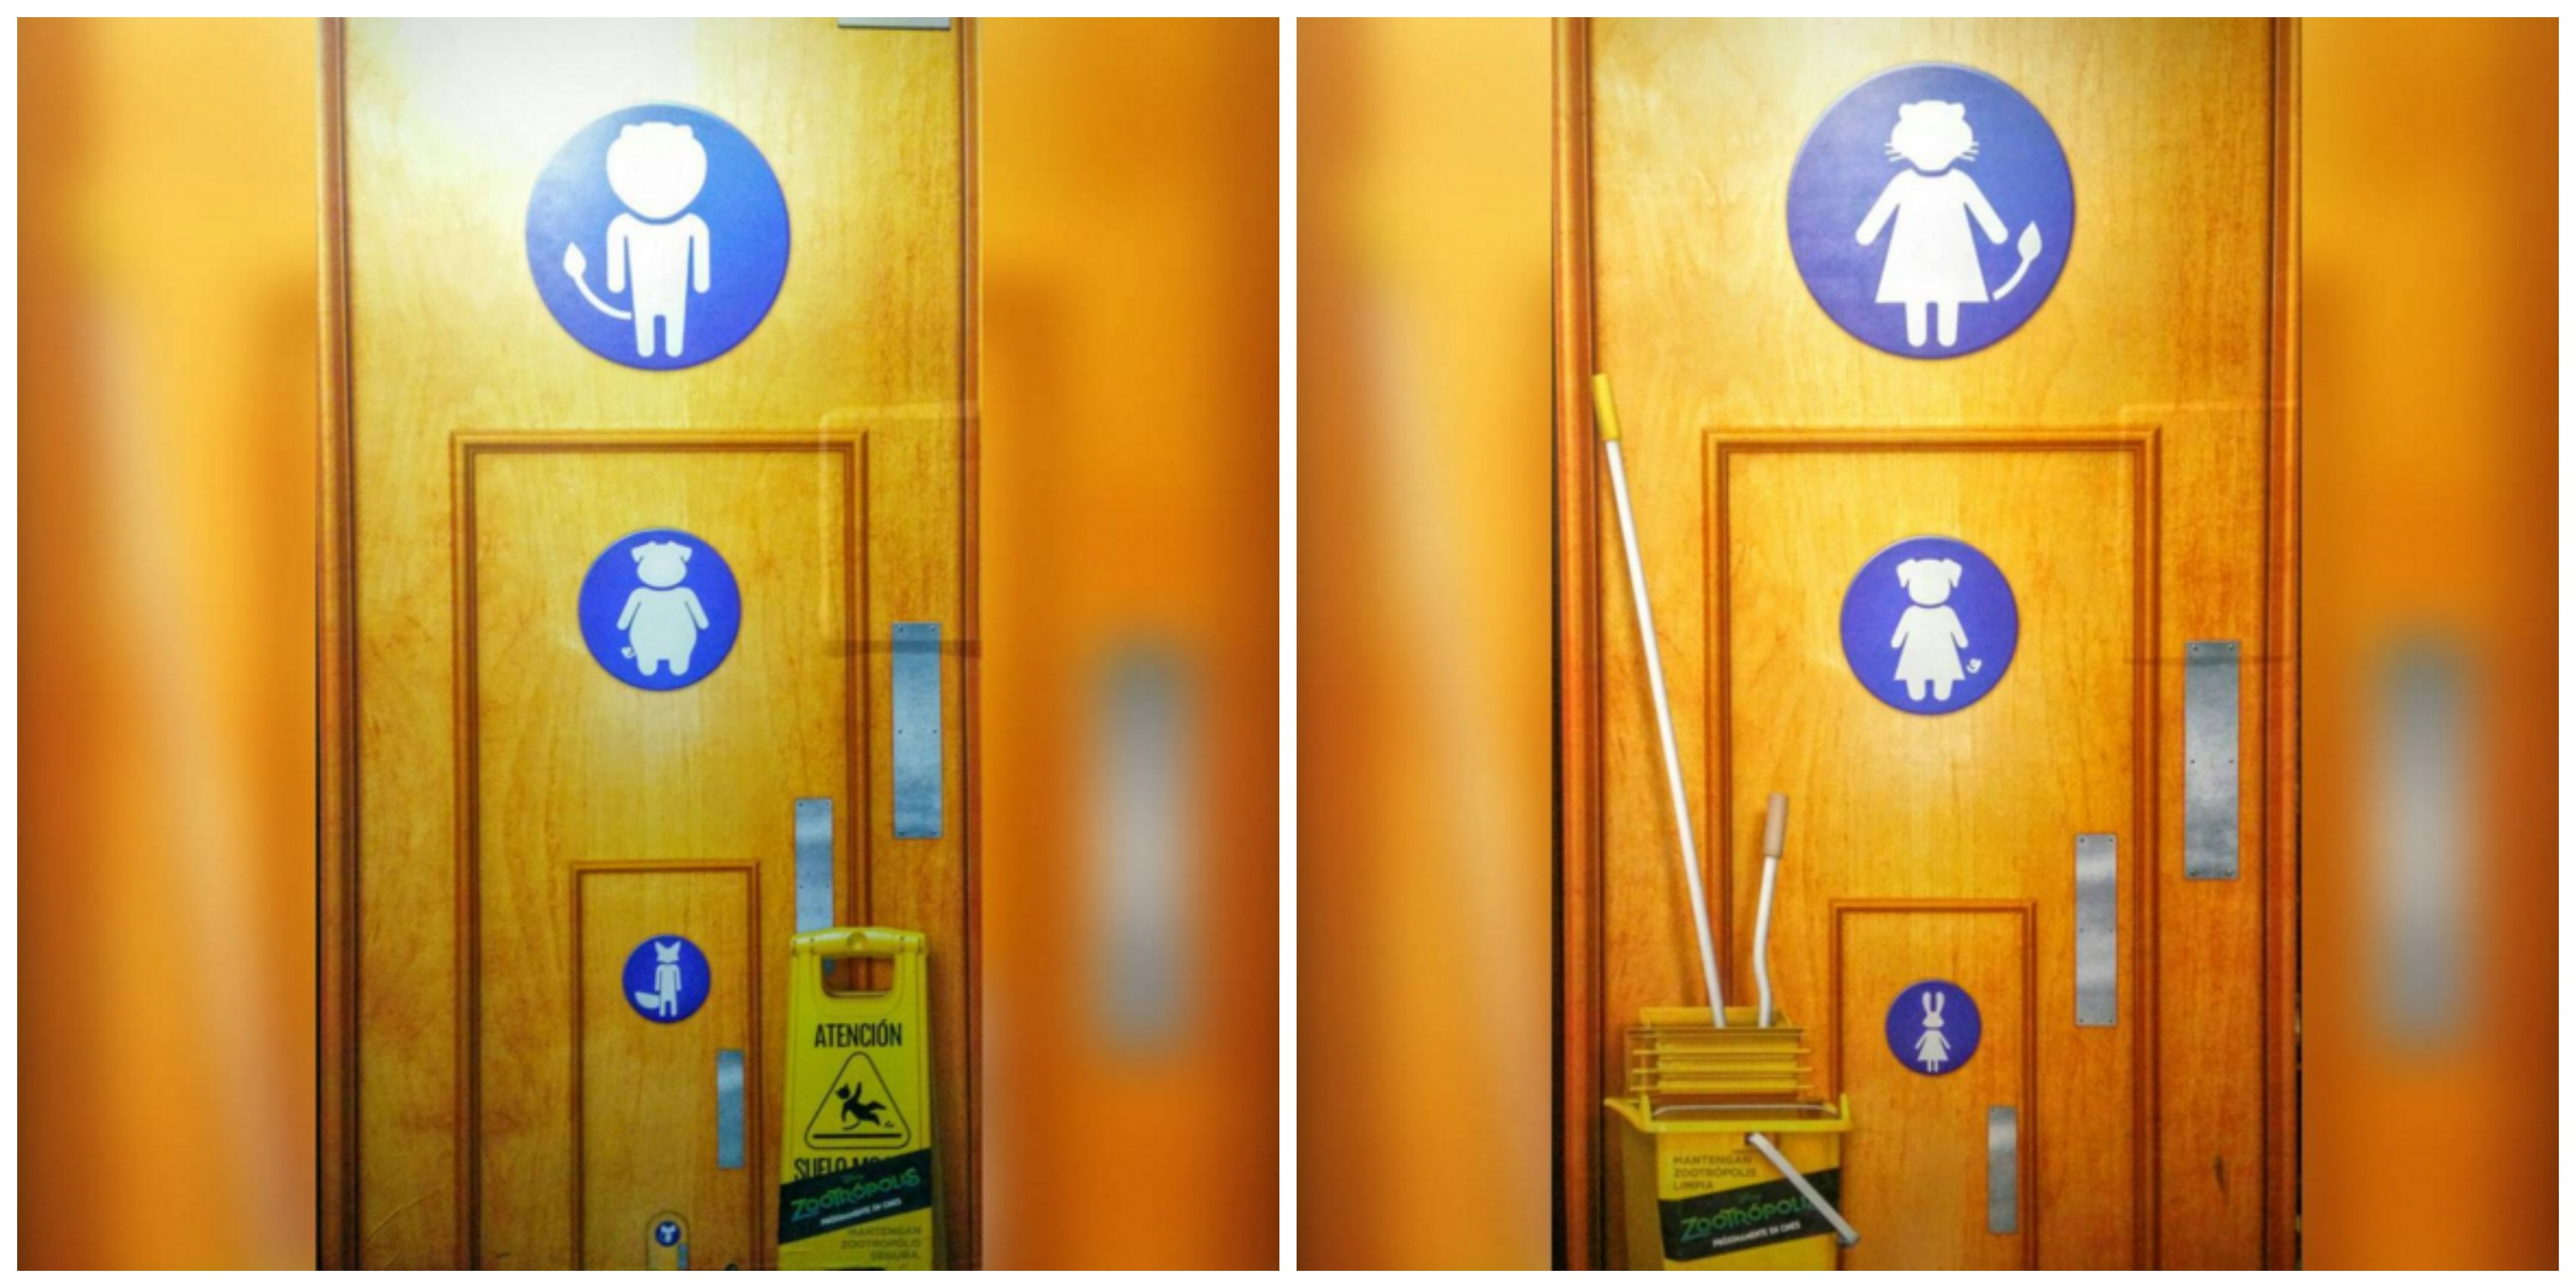 Funny Bathroom Signs Youtube funny bathroom signs from around the world